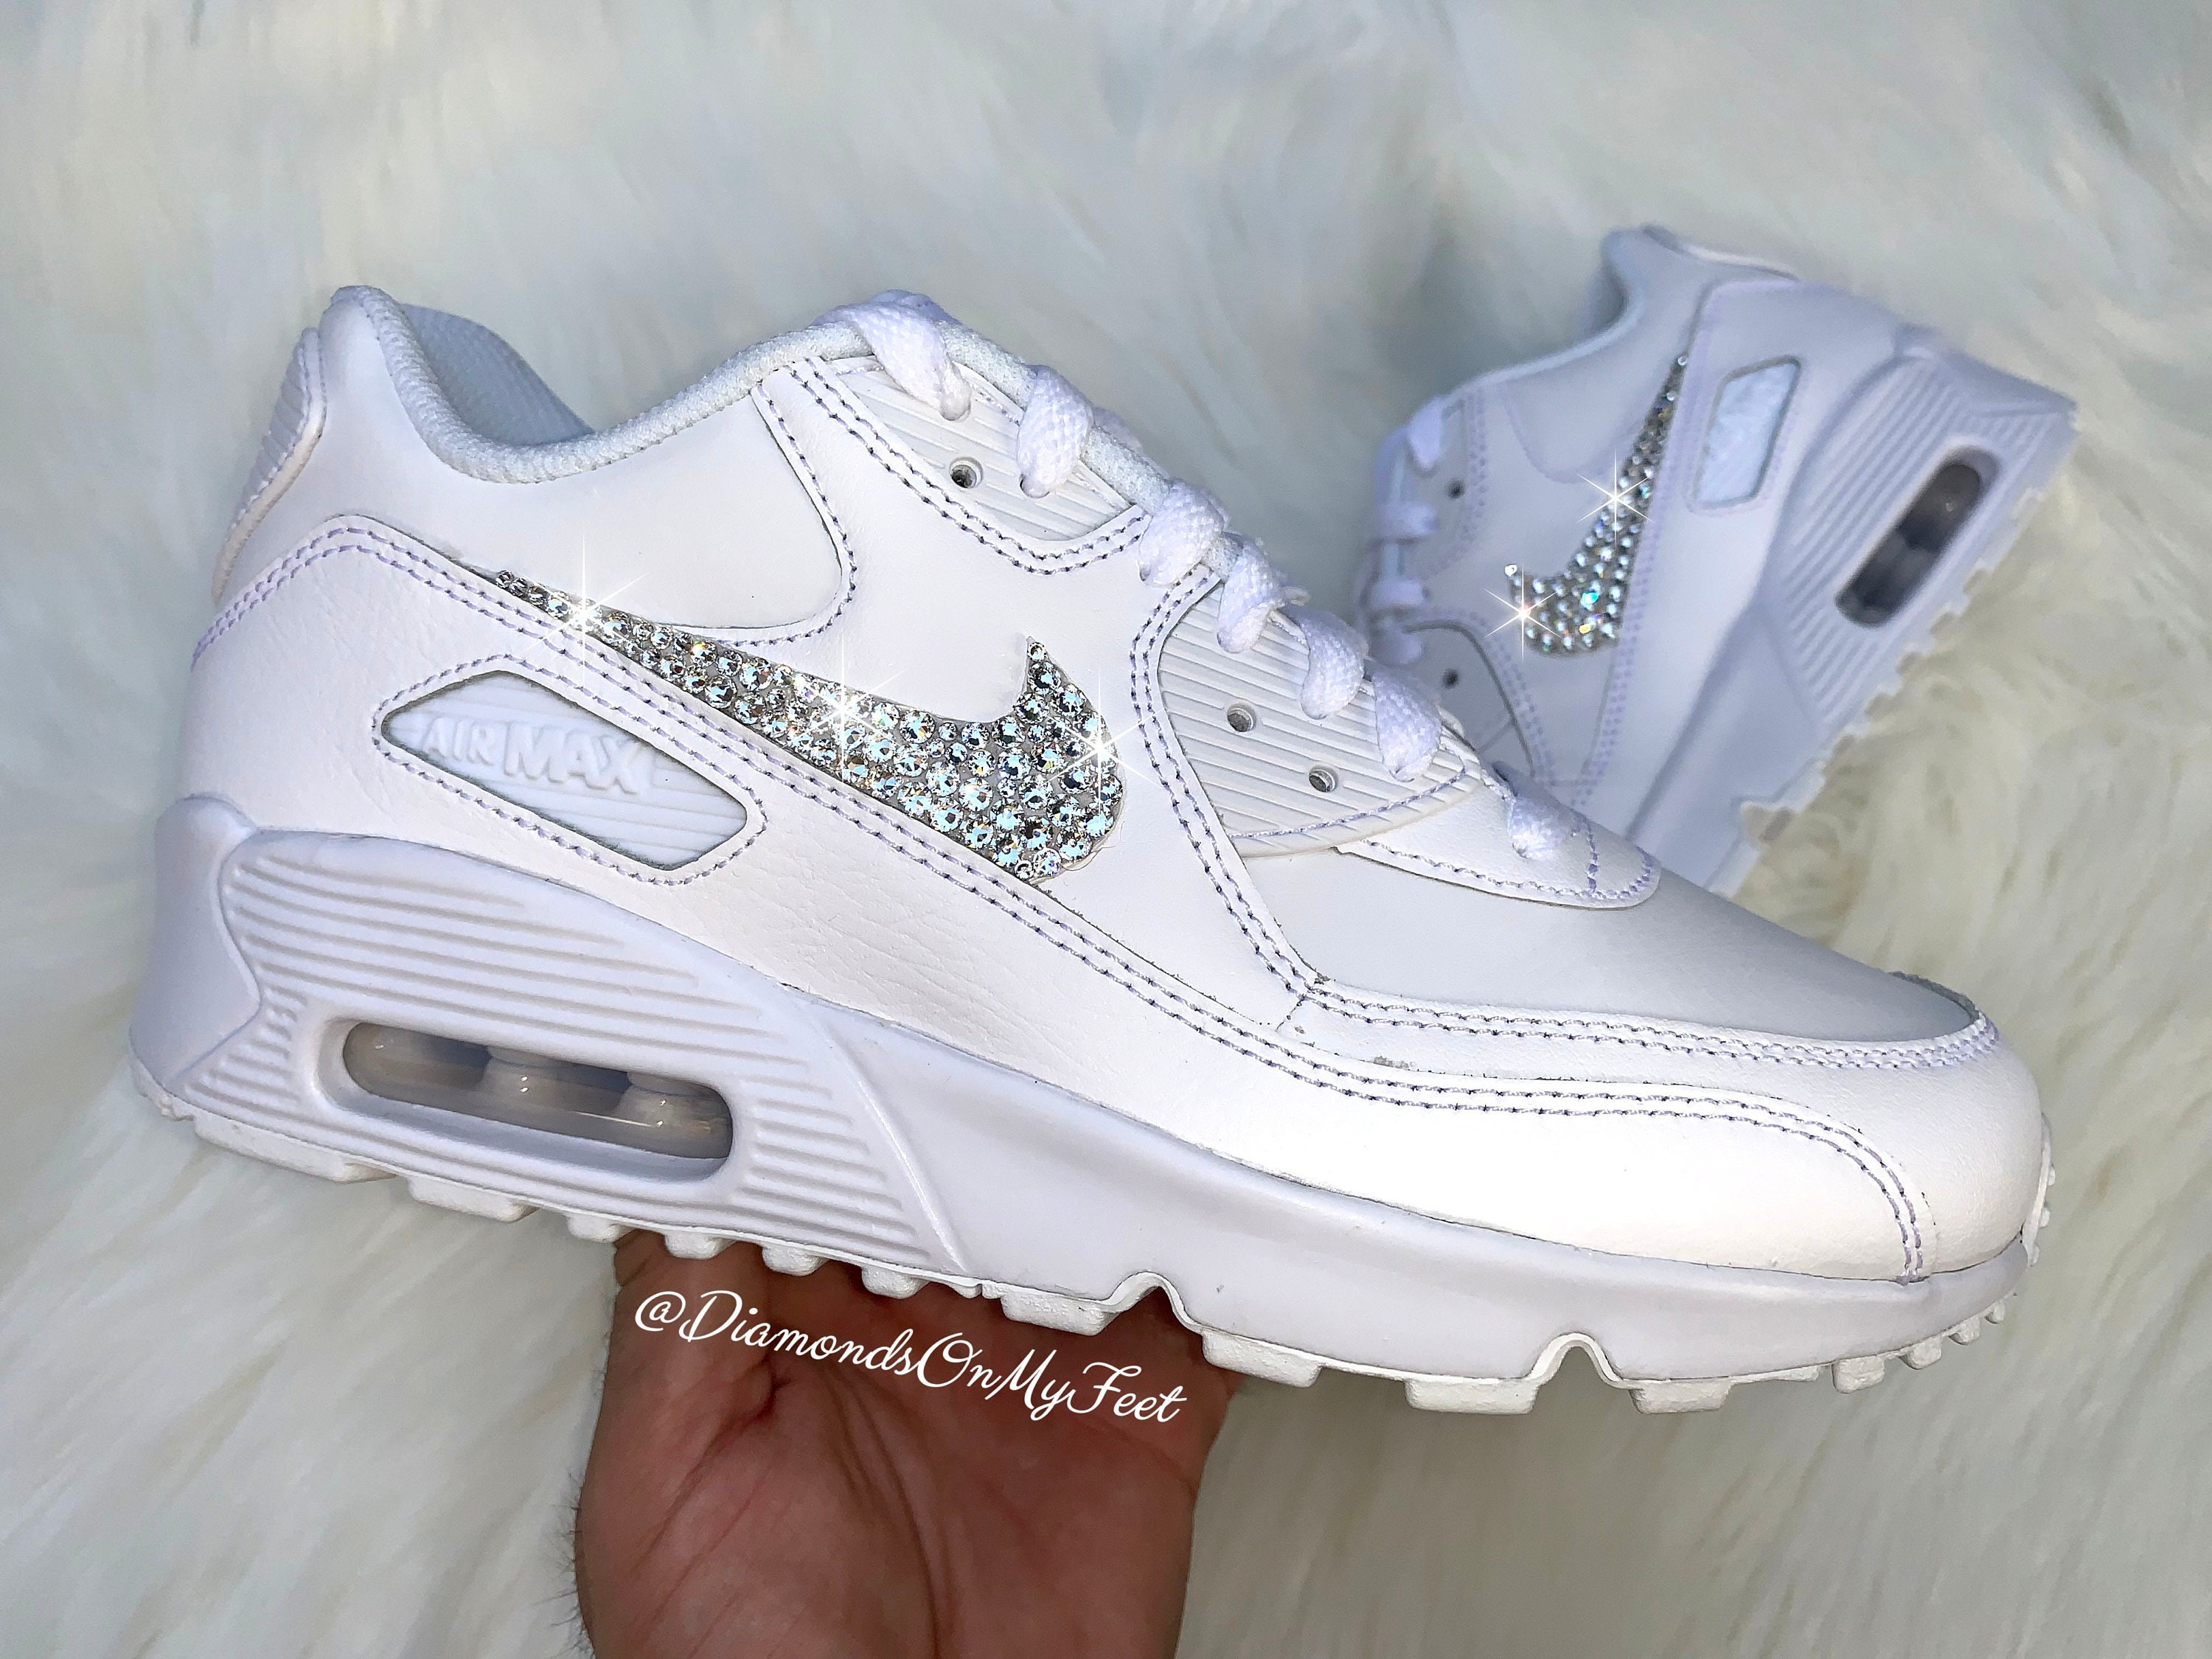 Swarovski Women's Nike Air Max 90 All White Sneakers Blinged Out With Authentic Clear Swarovski Crystals Custom Bling Nike Shoes